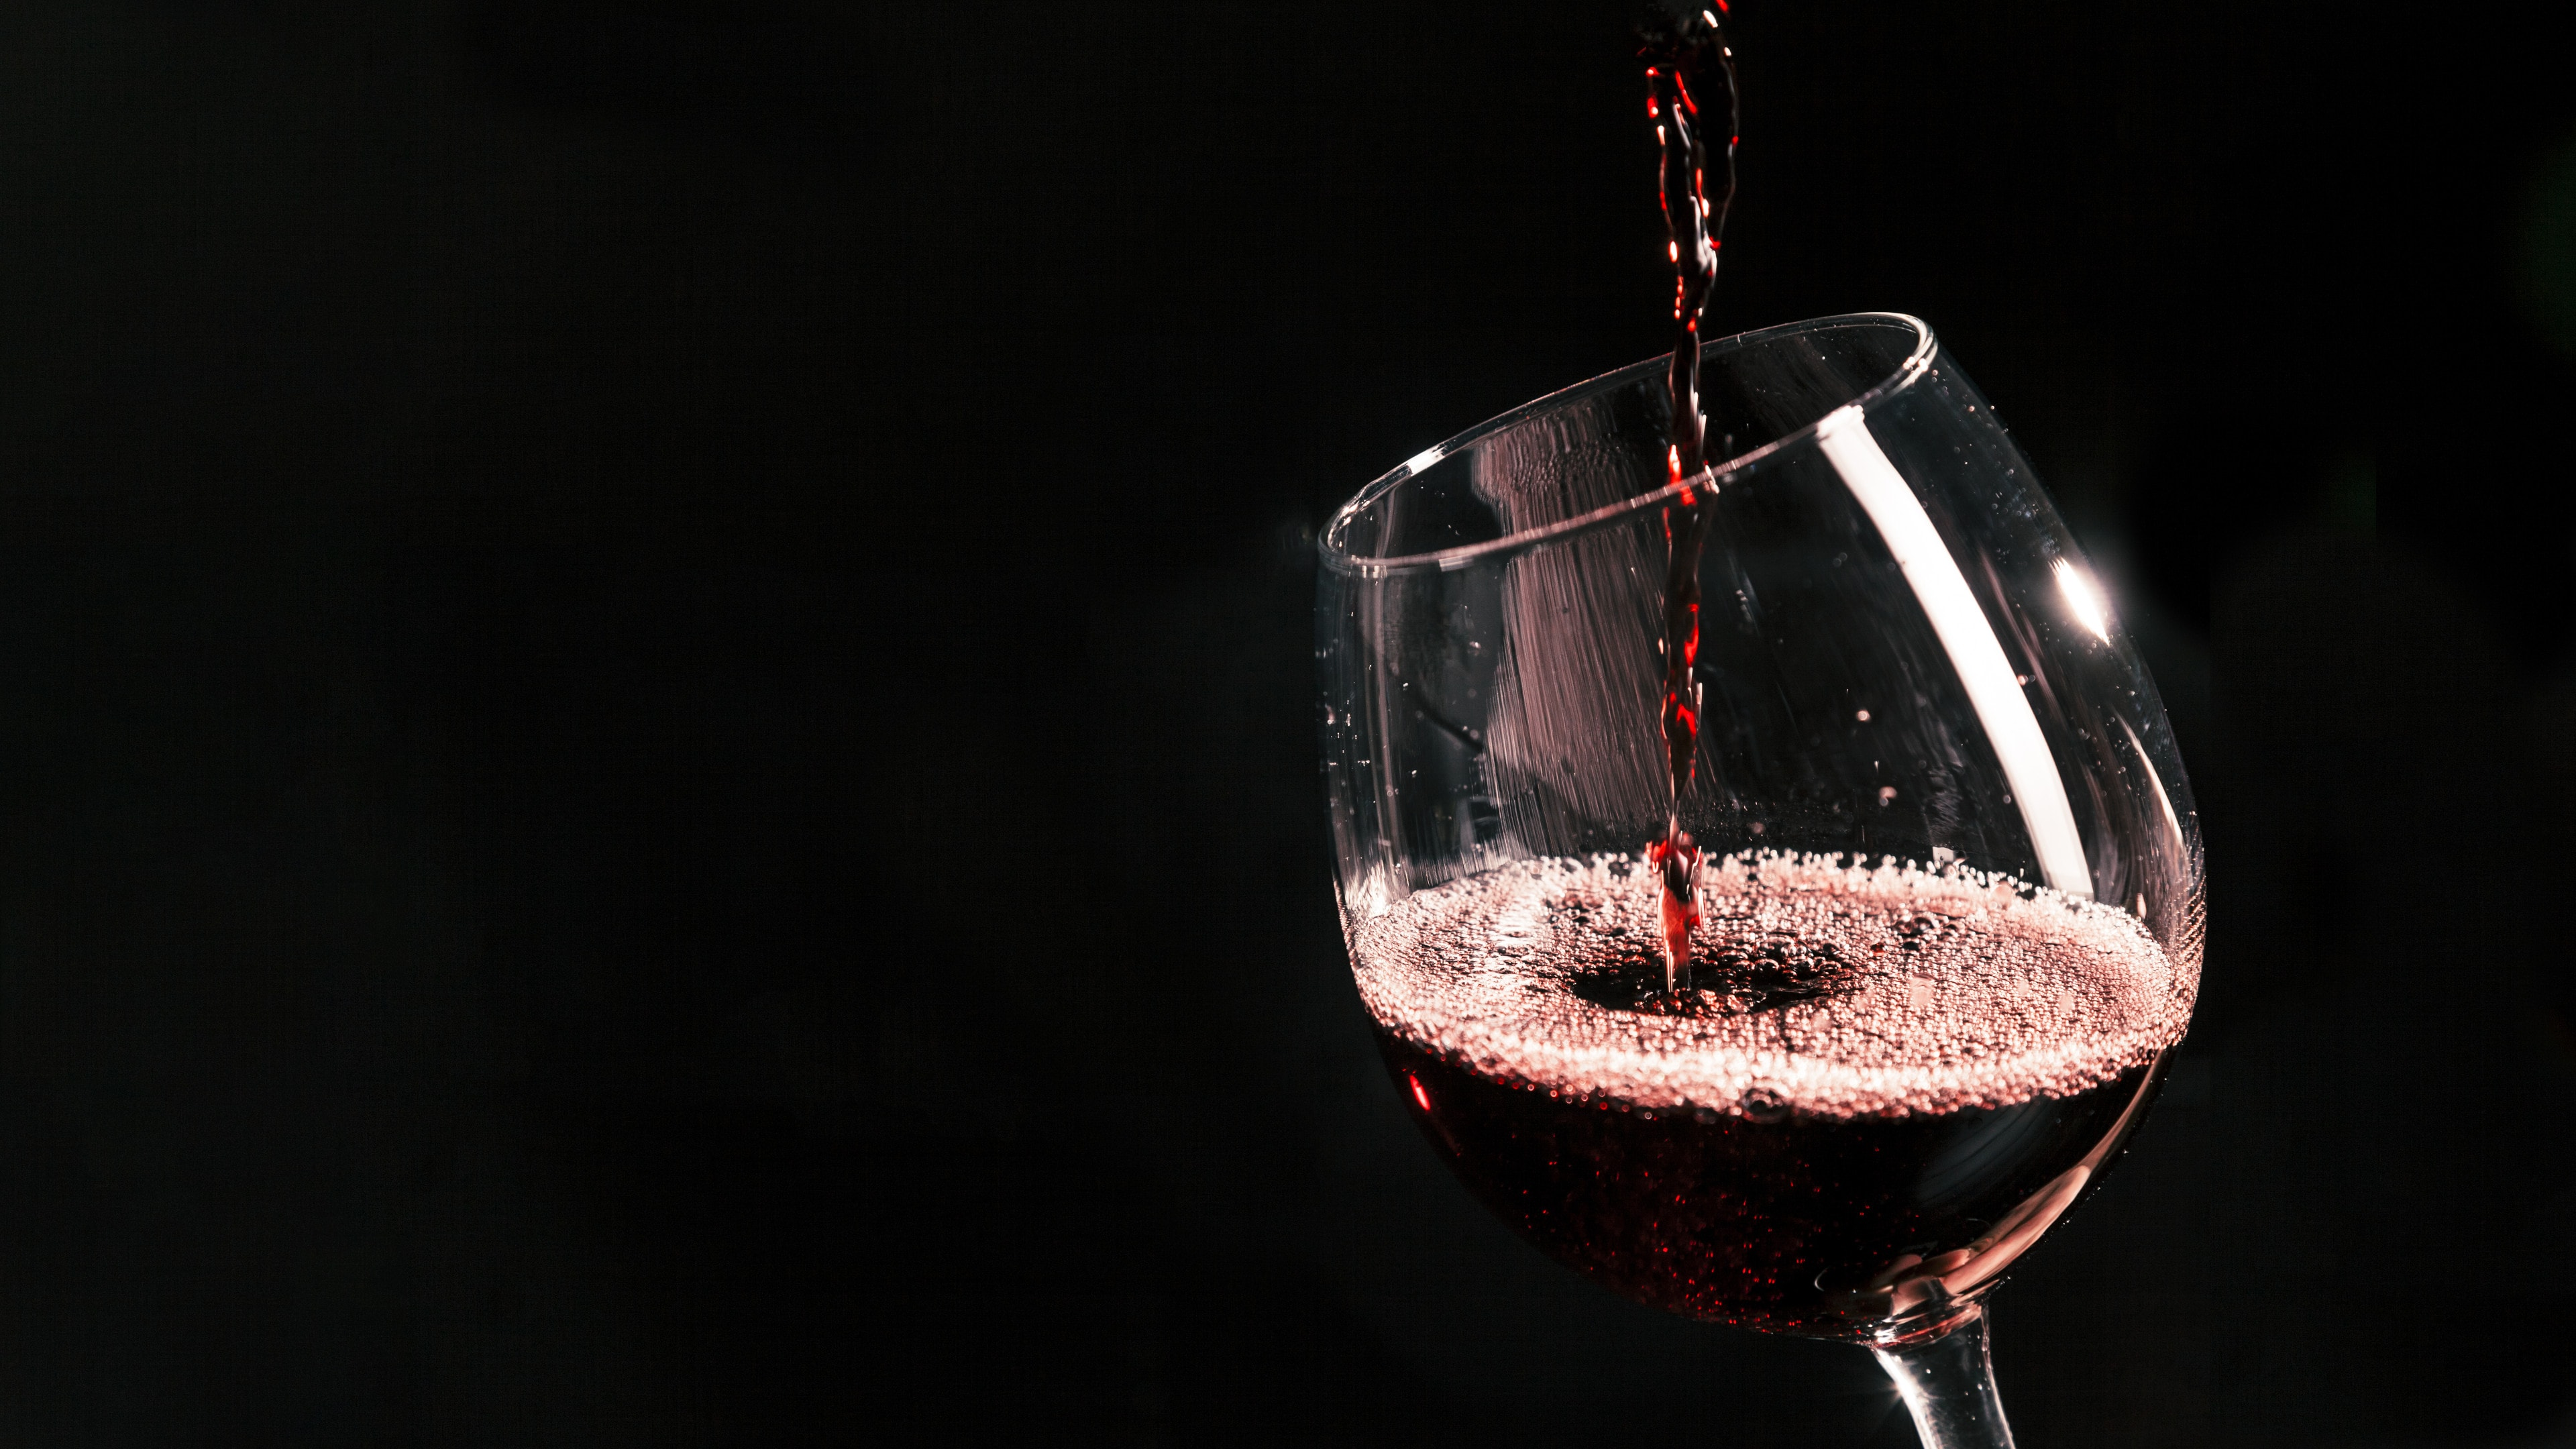 Red Wine Is Filling a Goblet